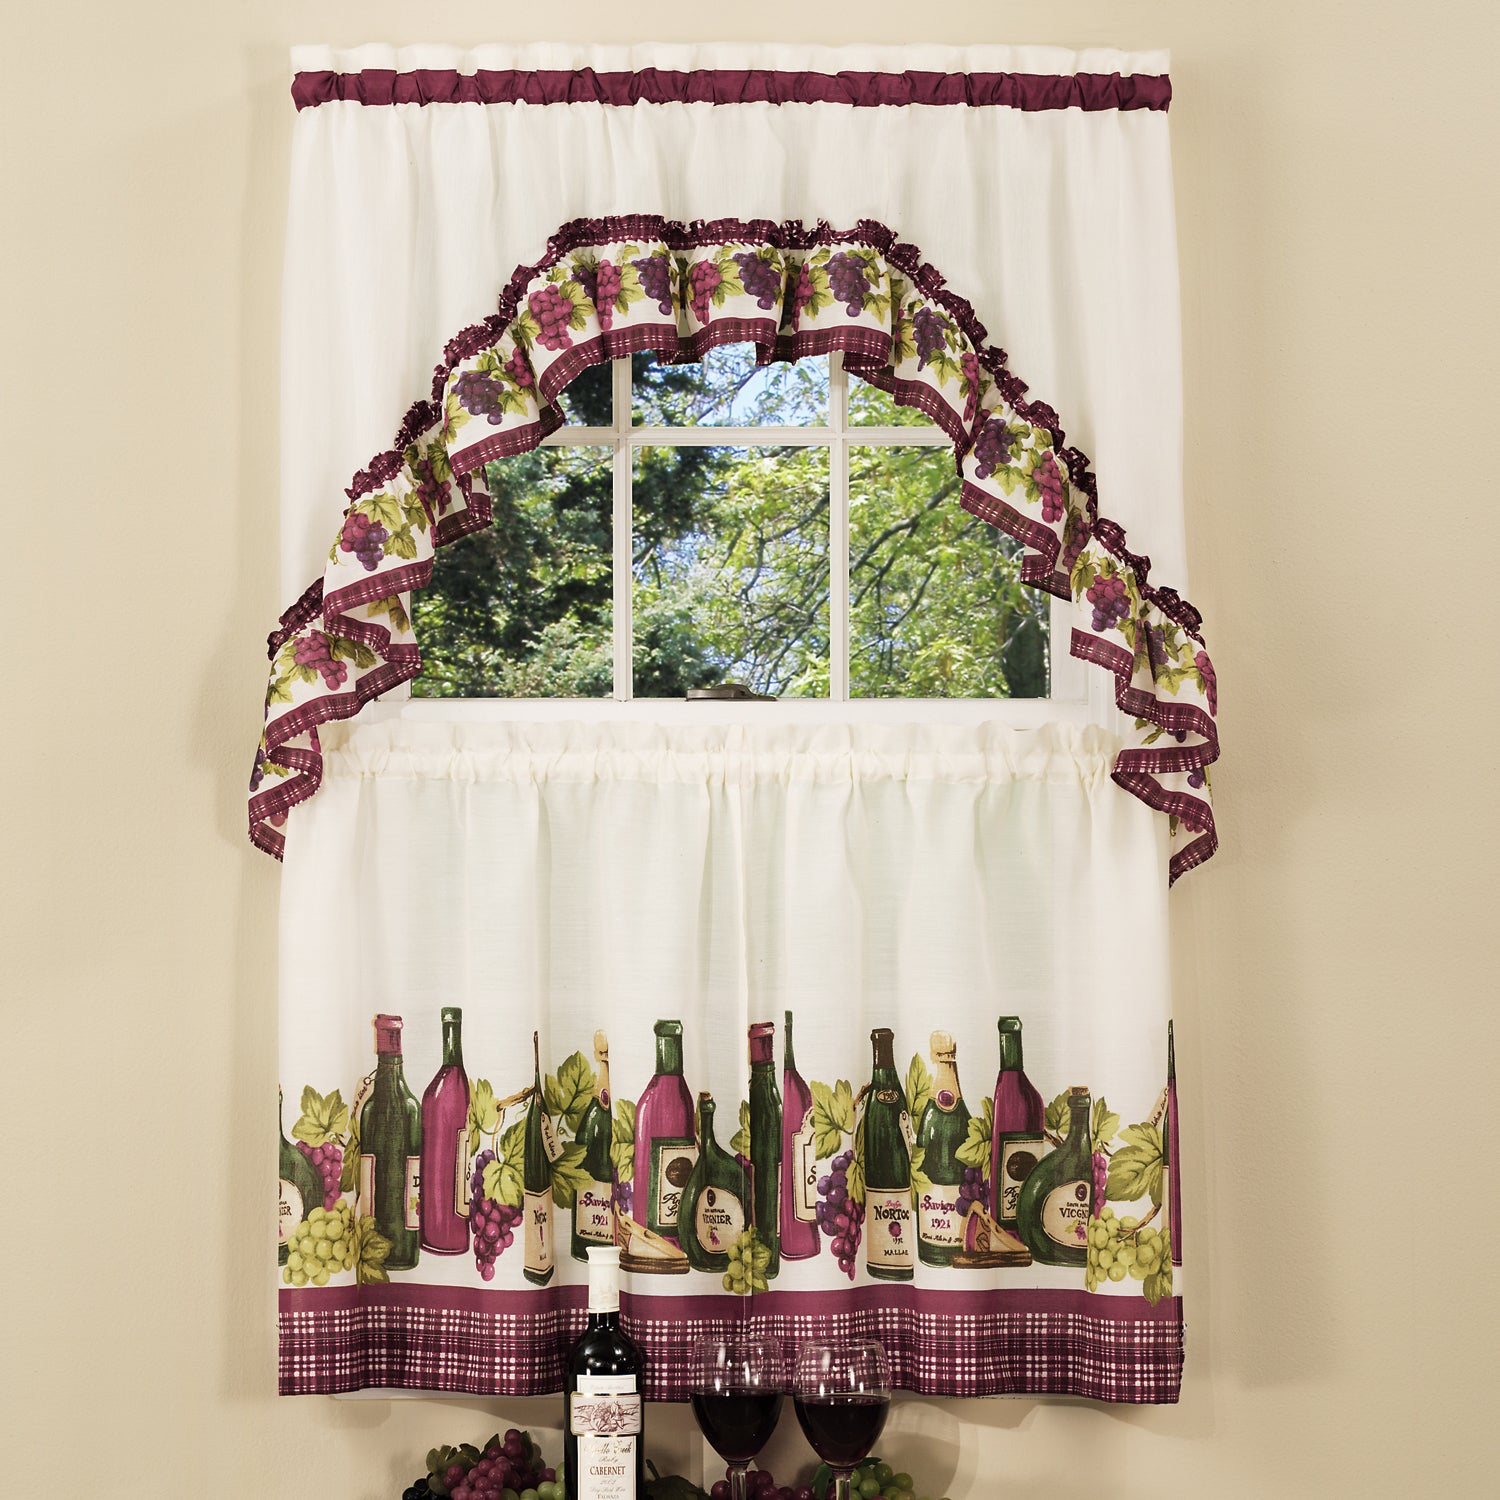 Traditional Two Piece Tailored Tier And Swag Window Curtains Set With Classic French Wine And Grapes Print – 36 Inch Throughout Cotton Blend Ivy Floral Tier Curtain And Swag Sets (View 20 of 20)